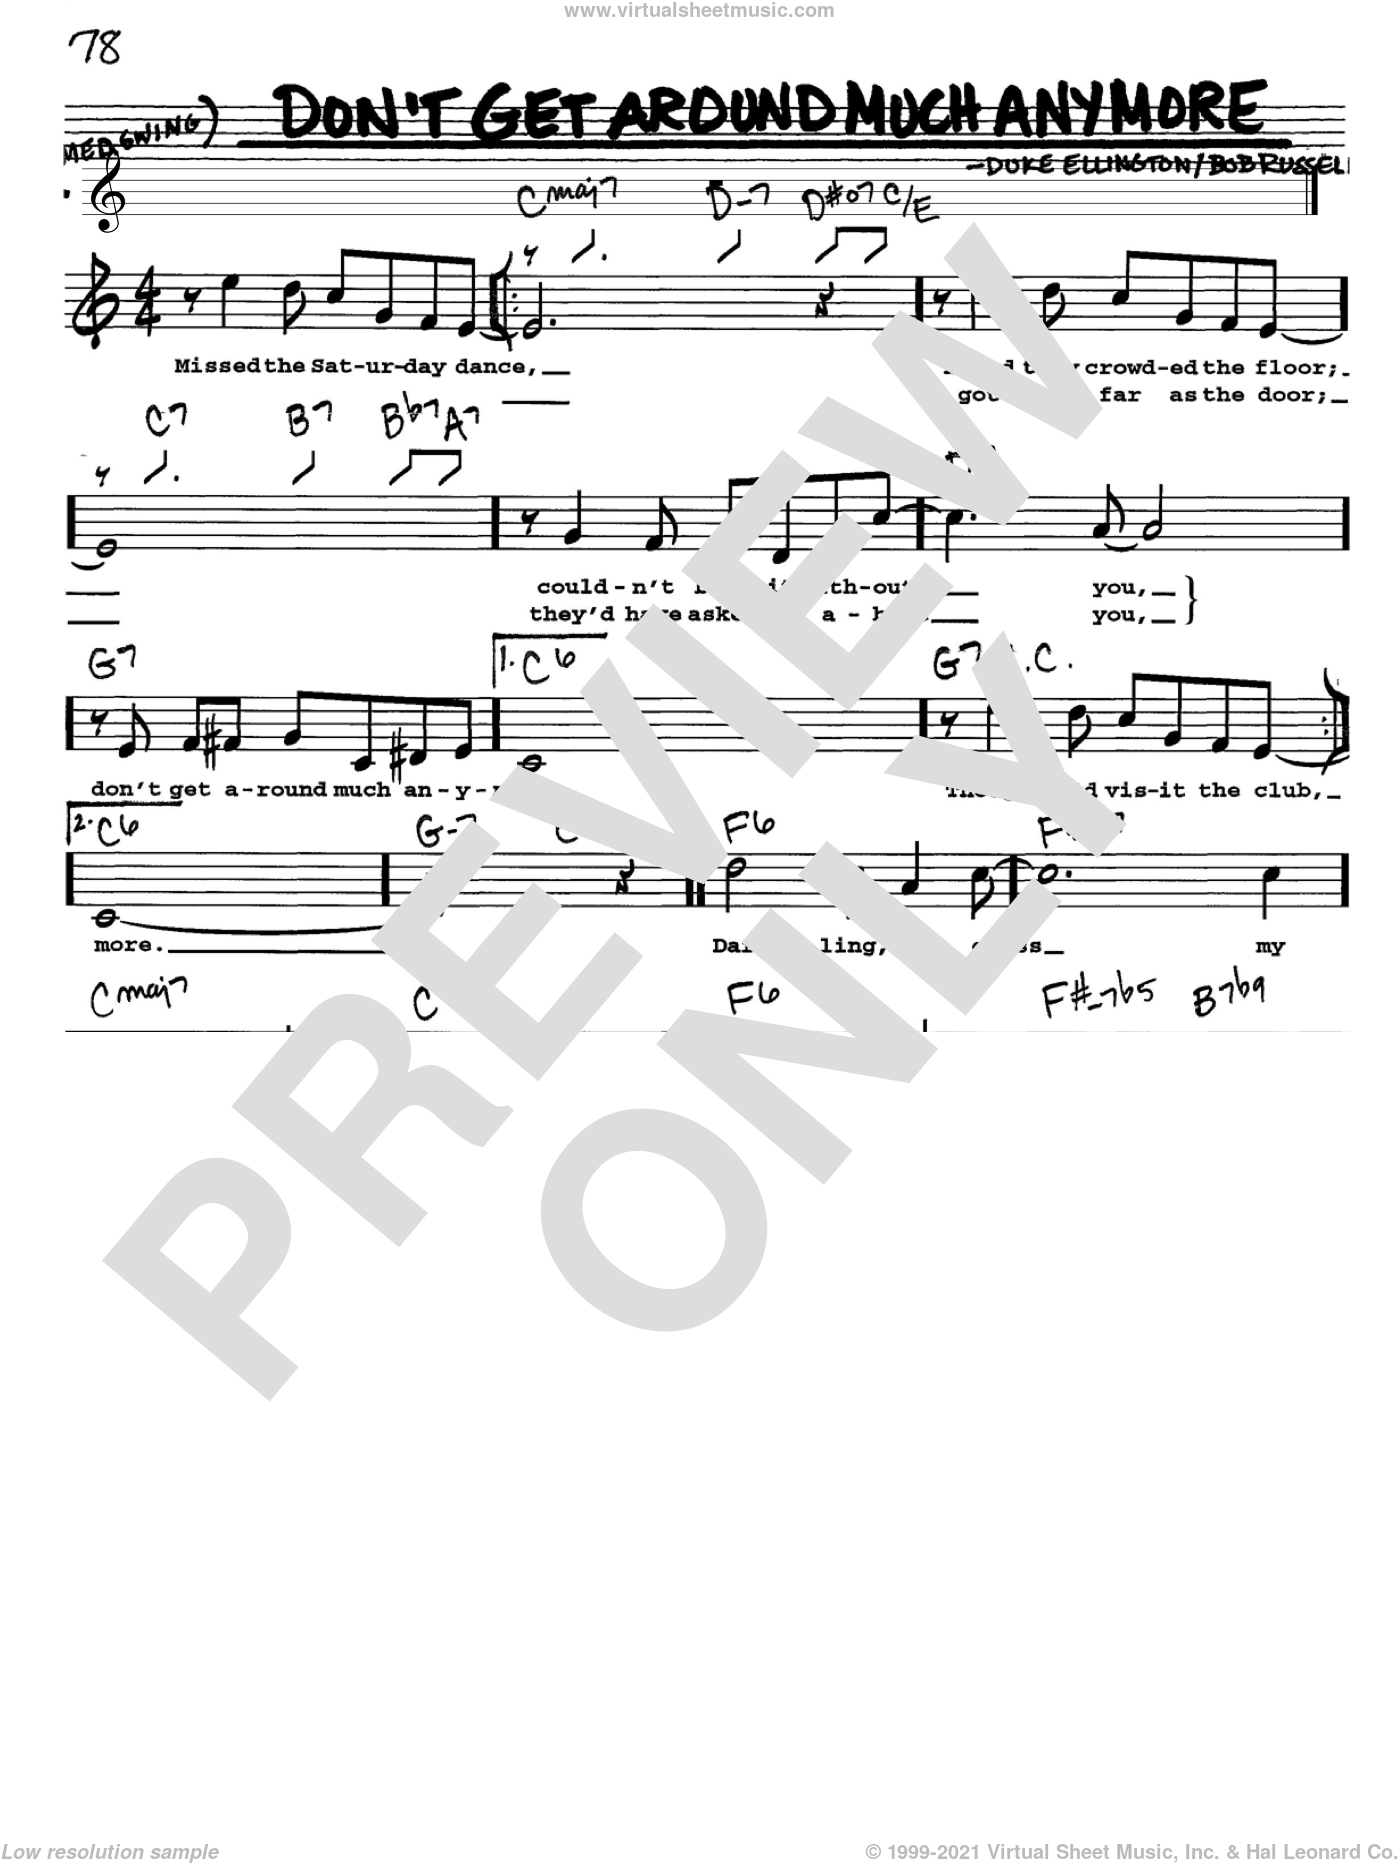 Don't Get Around Much Anymore sheet music for voice and other instruments (Vocal Volume 1) by Duke Ellington and Bob Russell, intermediate voice. Score Image Preview.